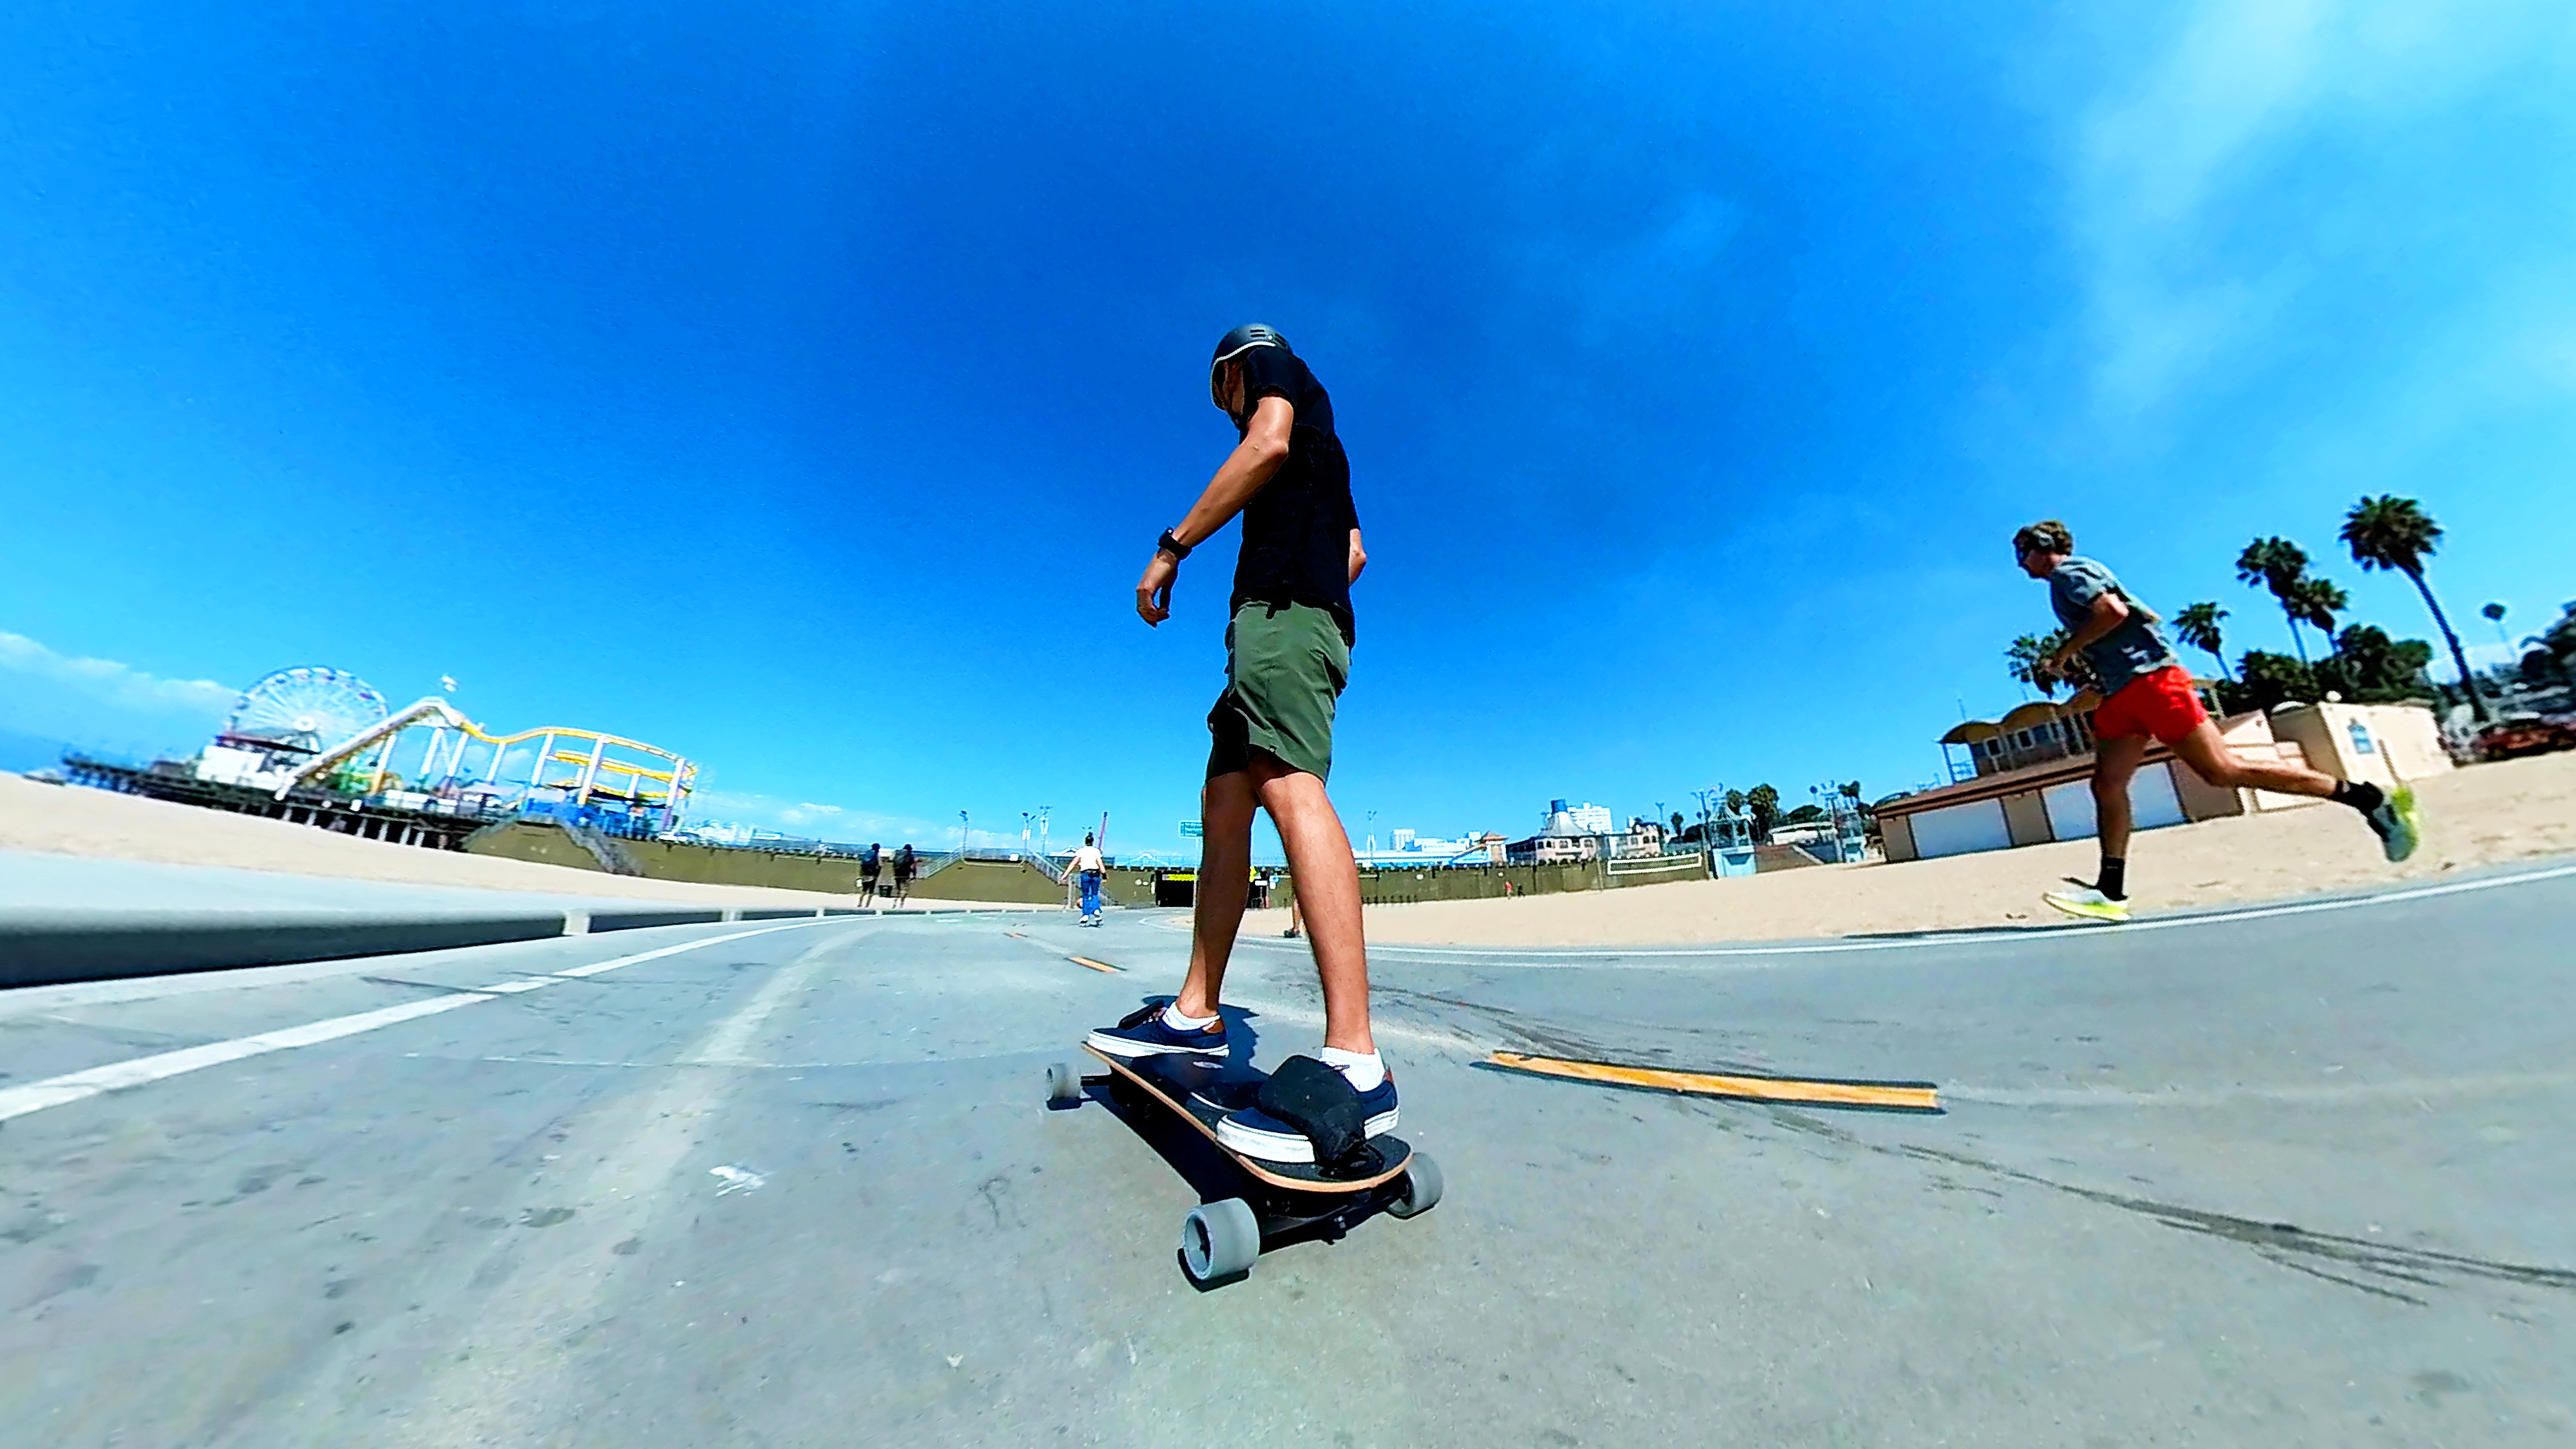 Video: Learning to ride the Summerboard